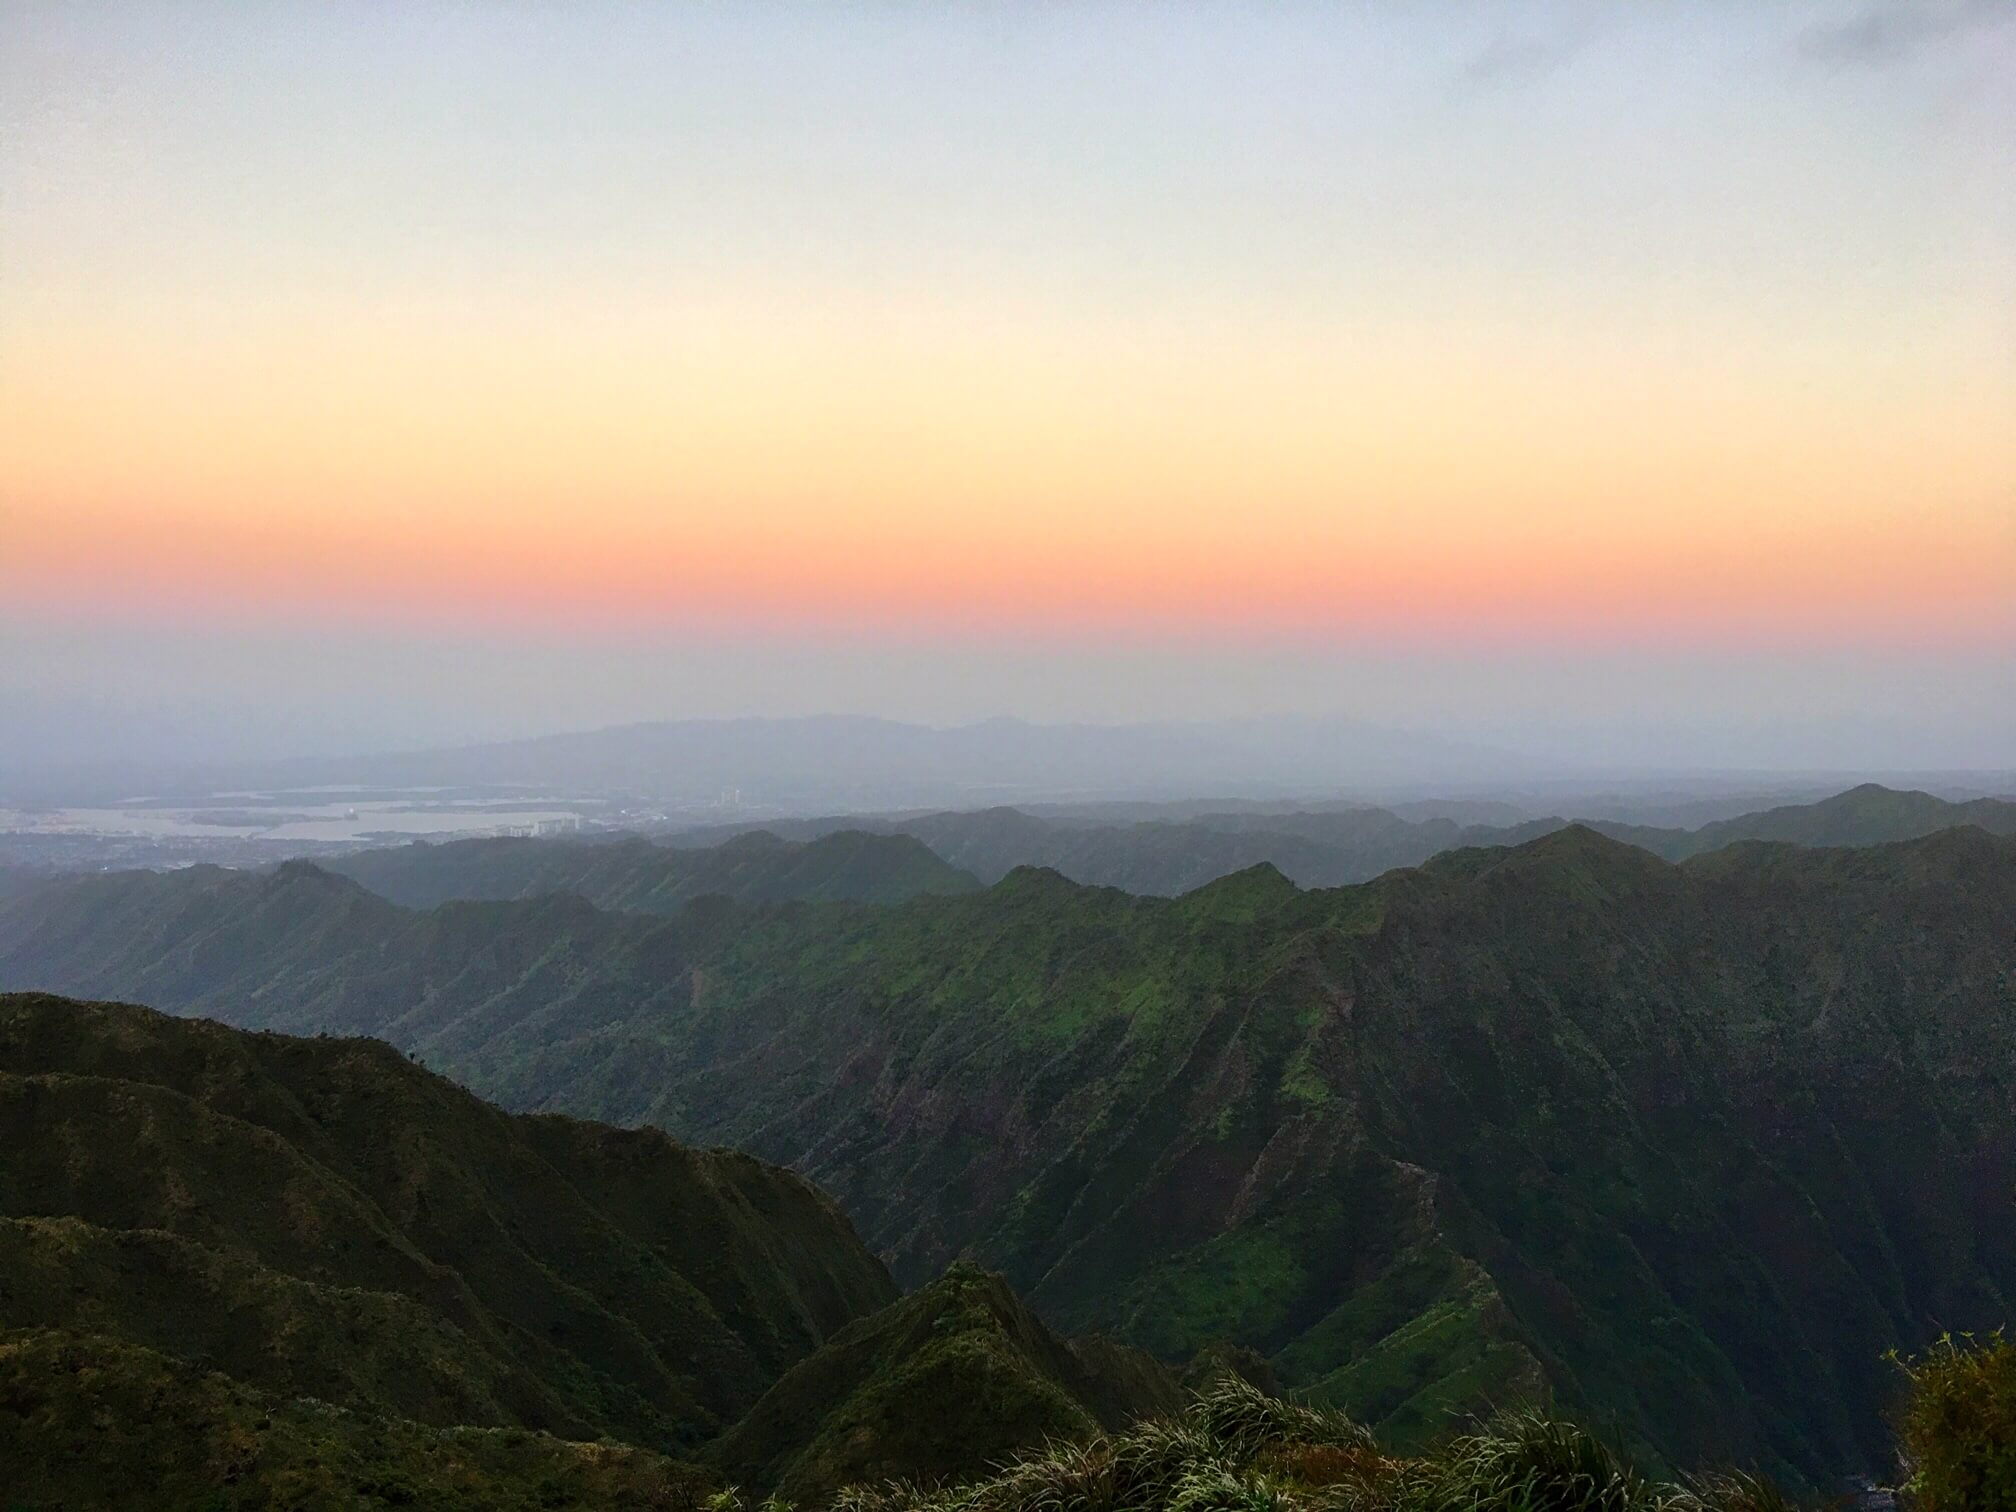 Under30experiences-blog-U30X-Community-2016-Year-in-Review-Reflecting-on-Moments-of-Change-and-Transformation-hawaii